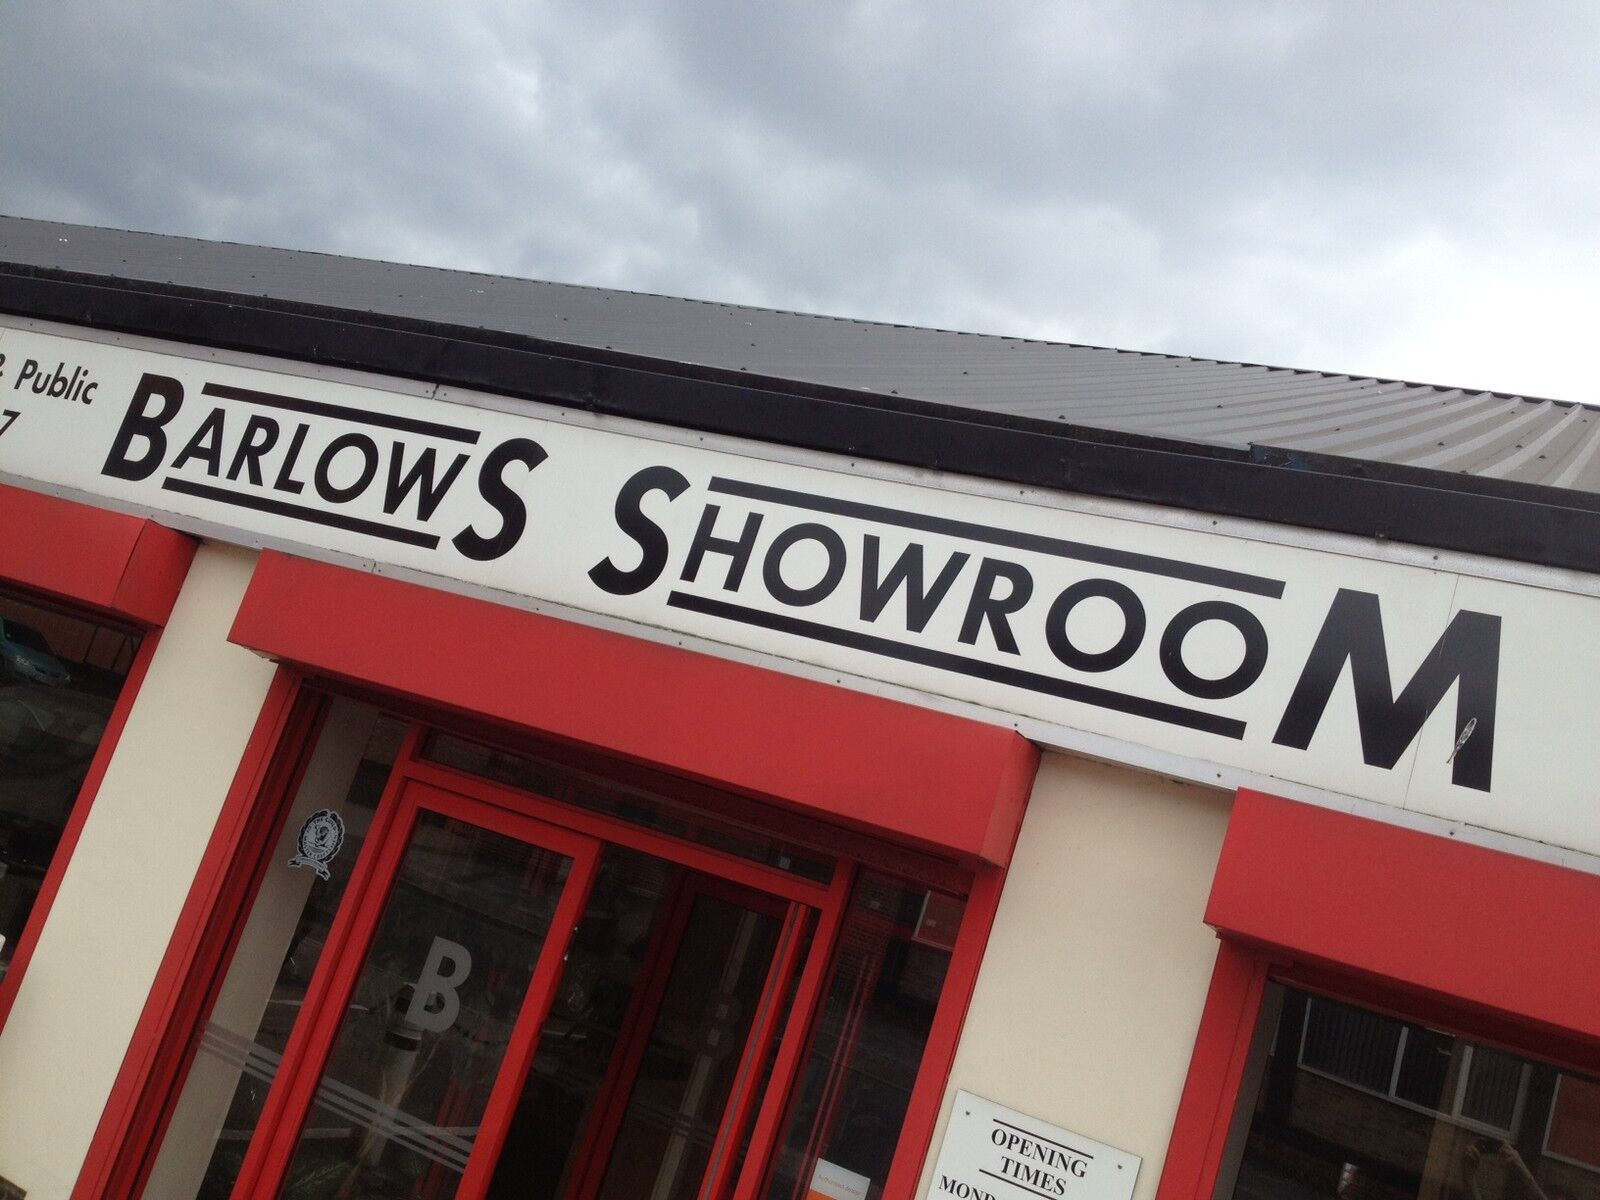 Barlows Boards Ltd